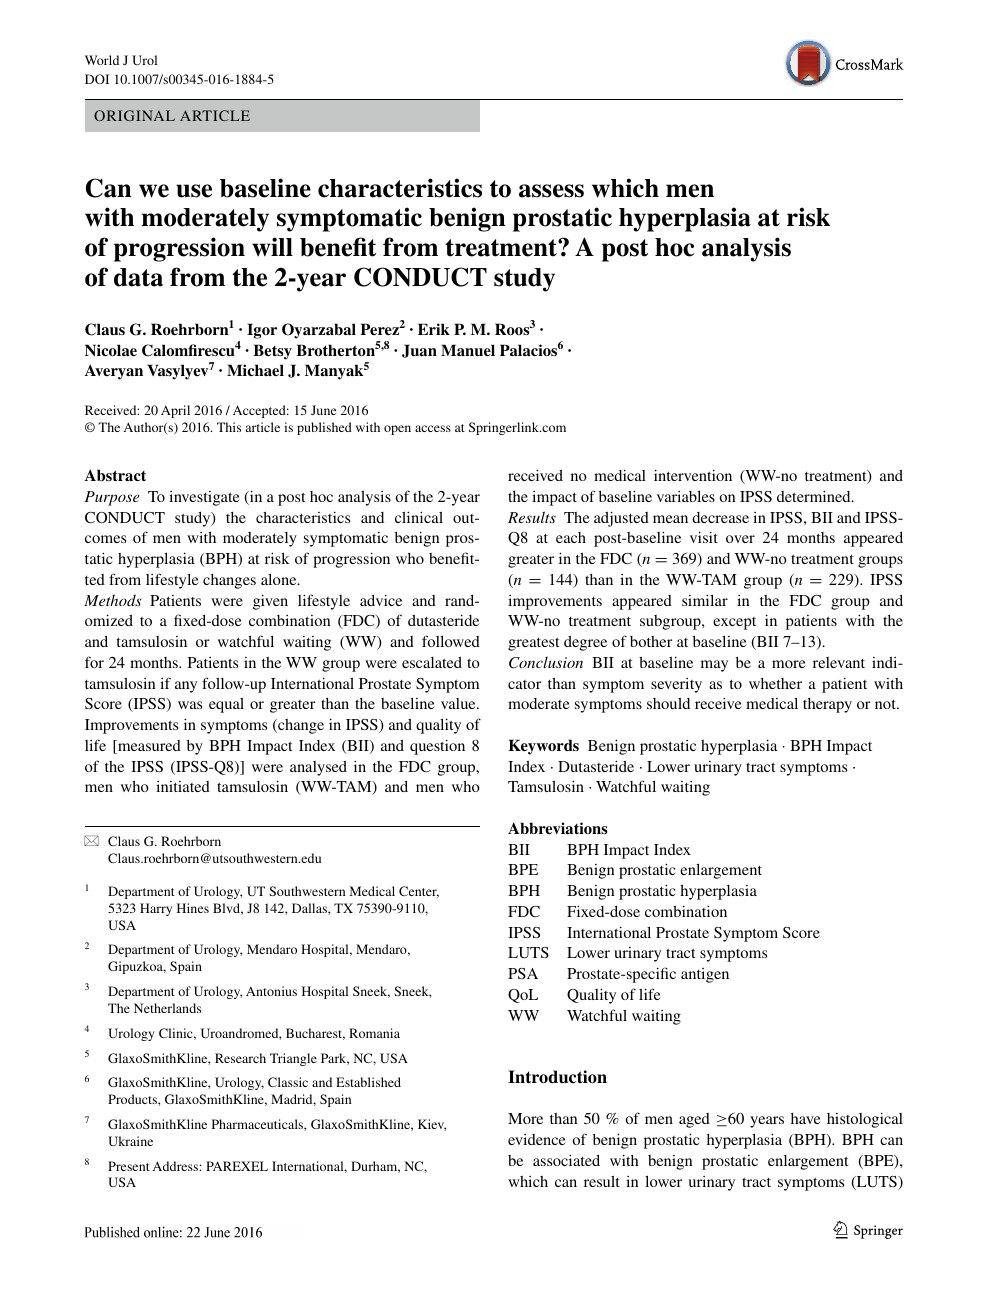 Can We Use Baseline Characteristics To Assess Which Men With Moderately Symptomatic Benign Prostatic Hyperplasia At Risk Of Progression Will Benefit From Treatment A Post Hoc Analysis Of Data From The 2 Year